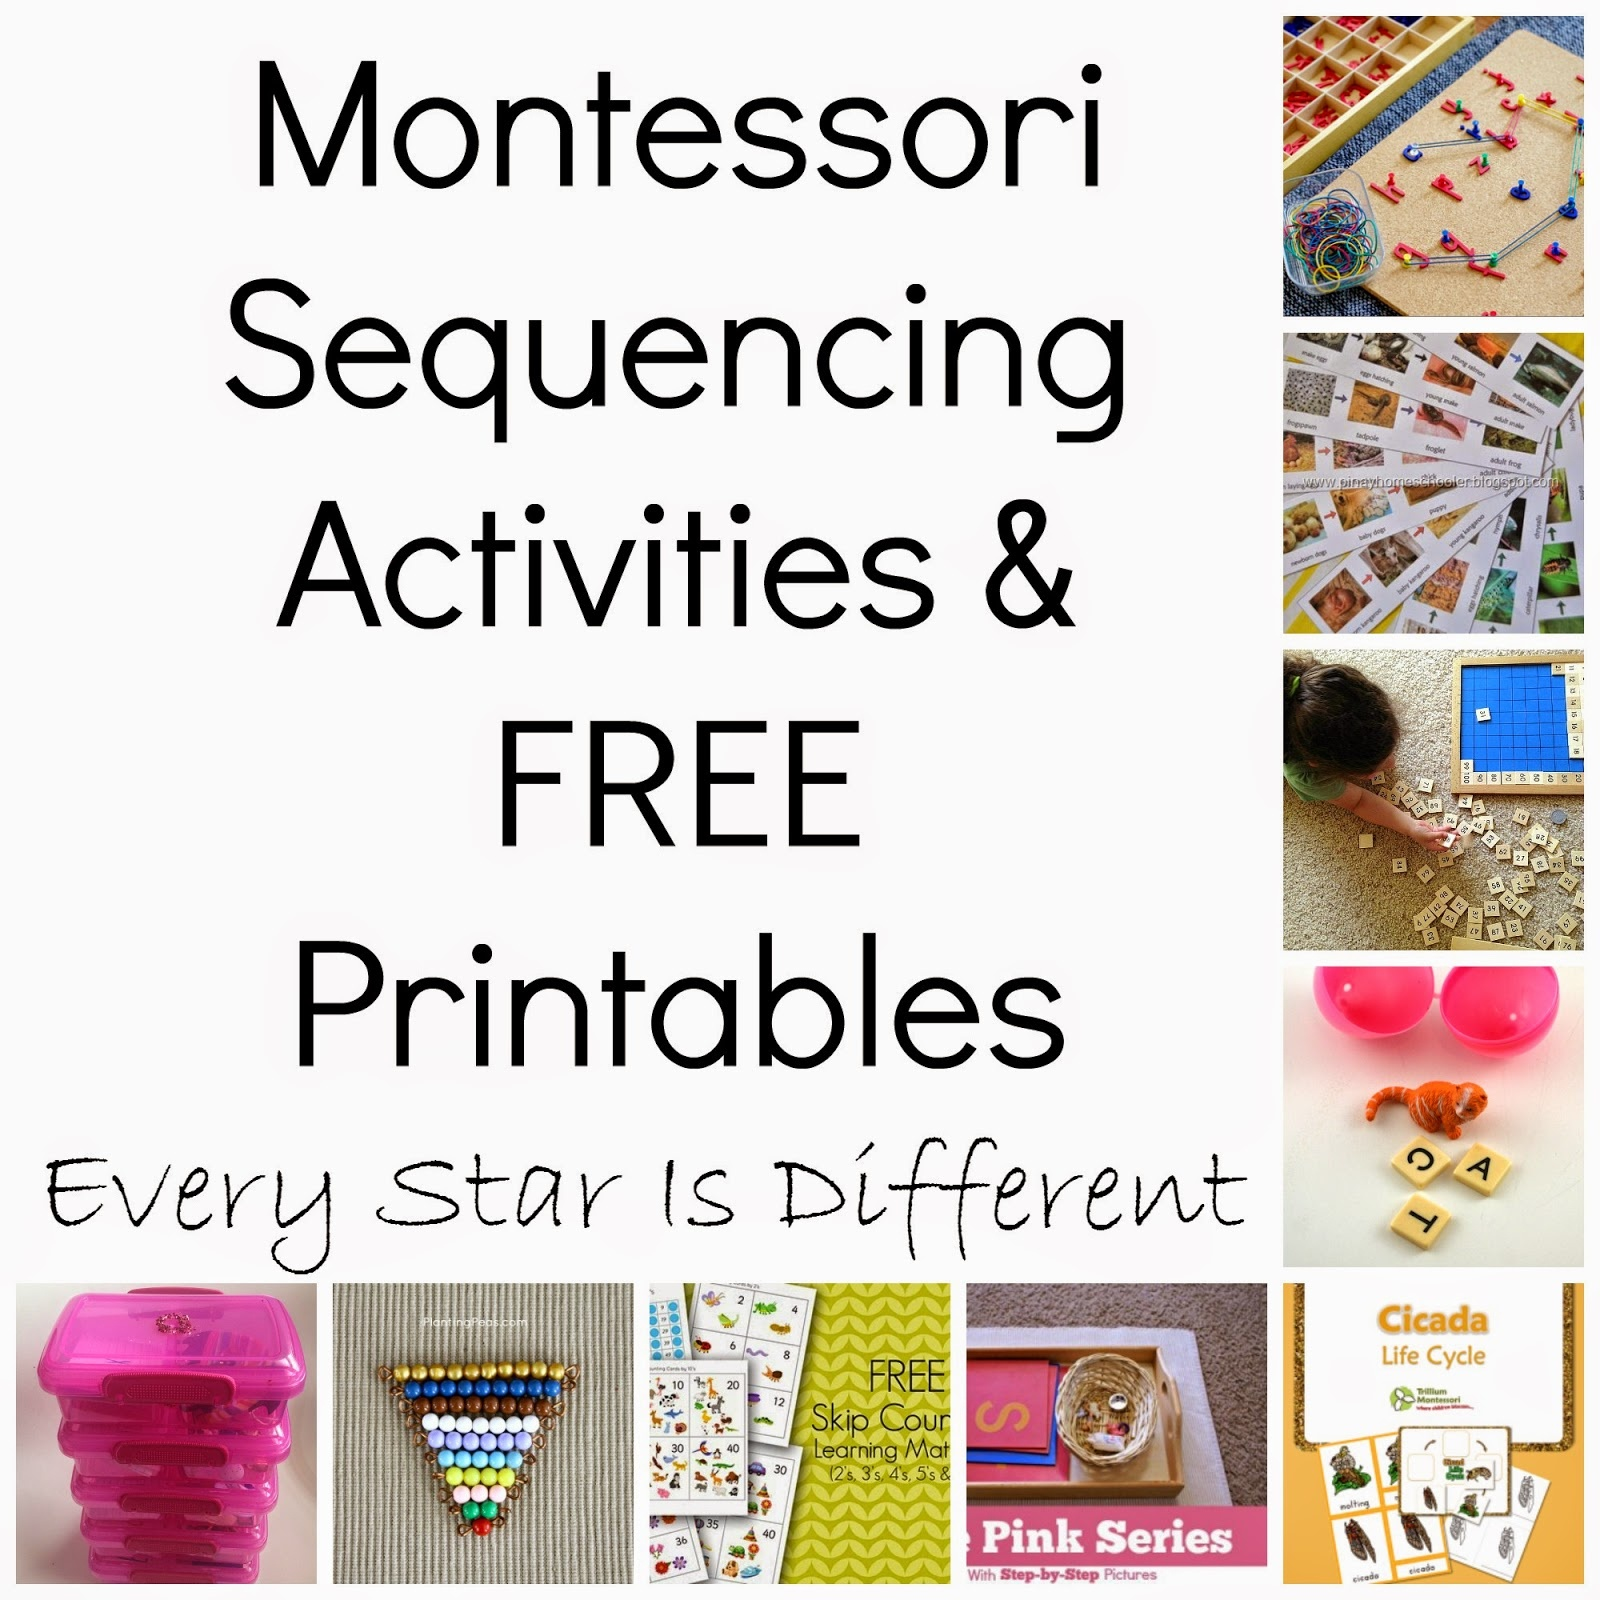 Montessori-Inspired Sequencing Activities & Free Printables (Klp - Free Montessori Printables